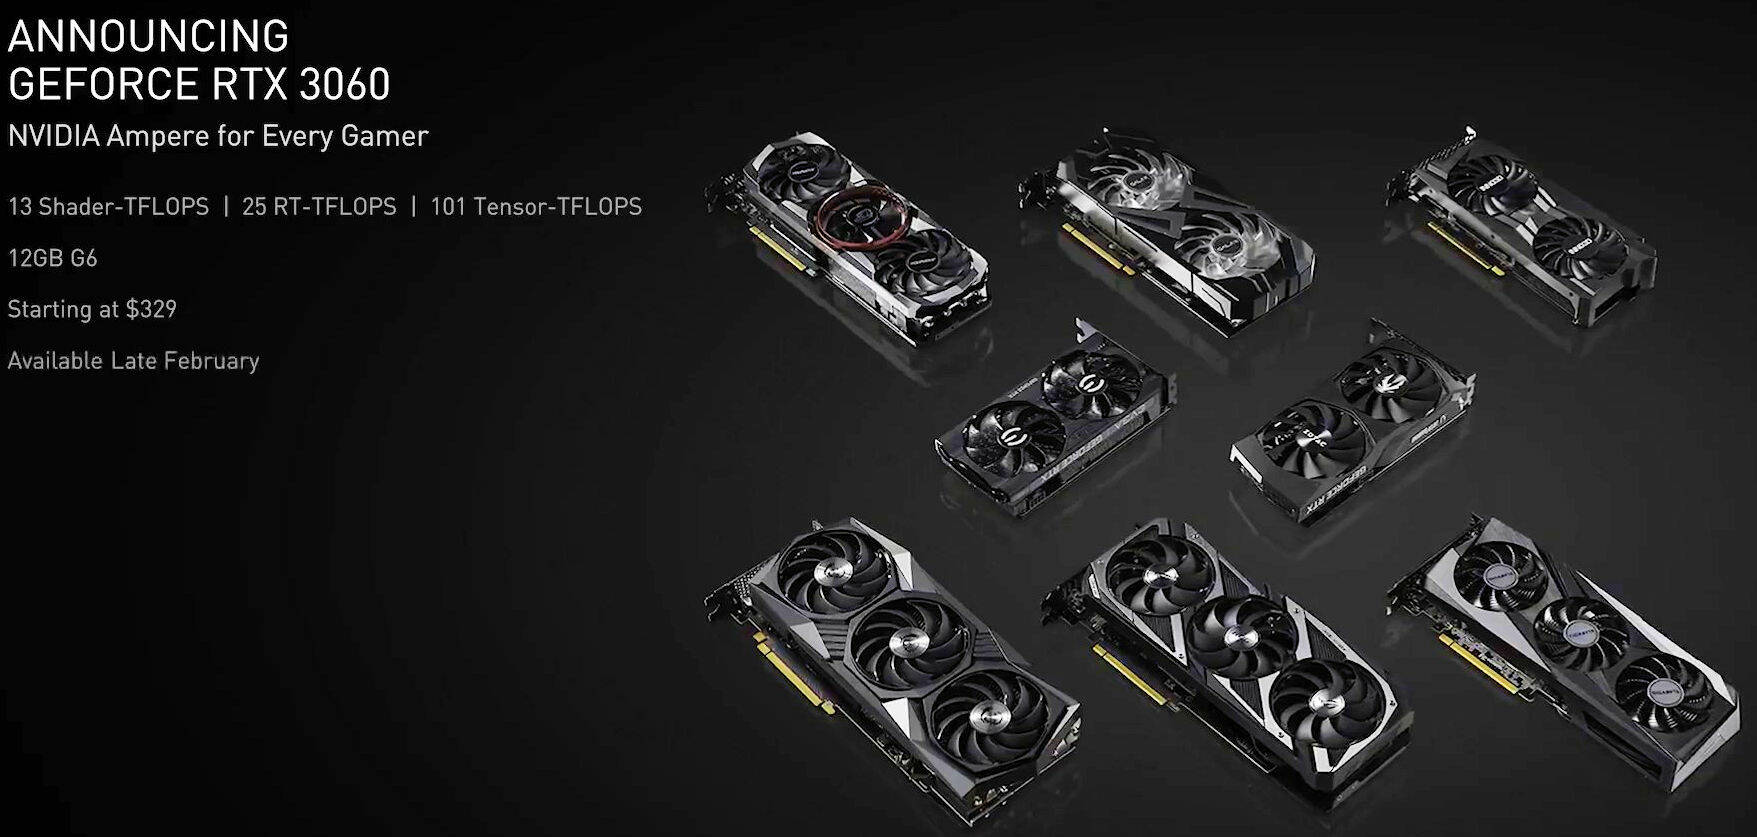 RTX 3060 Founder's Edition